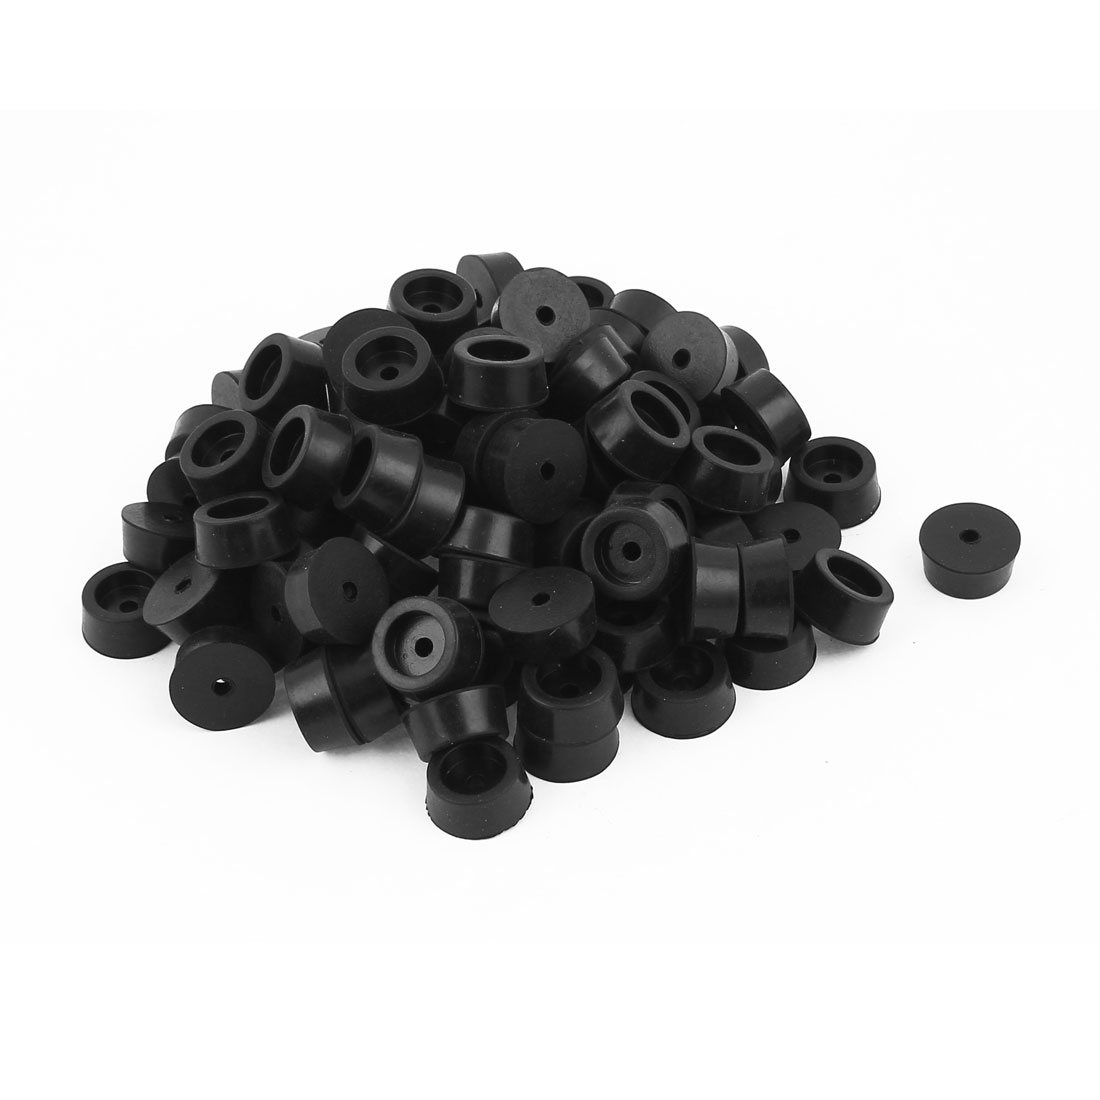 100 Pcs 18mm x 8mm Conical Rubber Furniture Bumper Foot Cover Pad Black